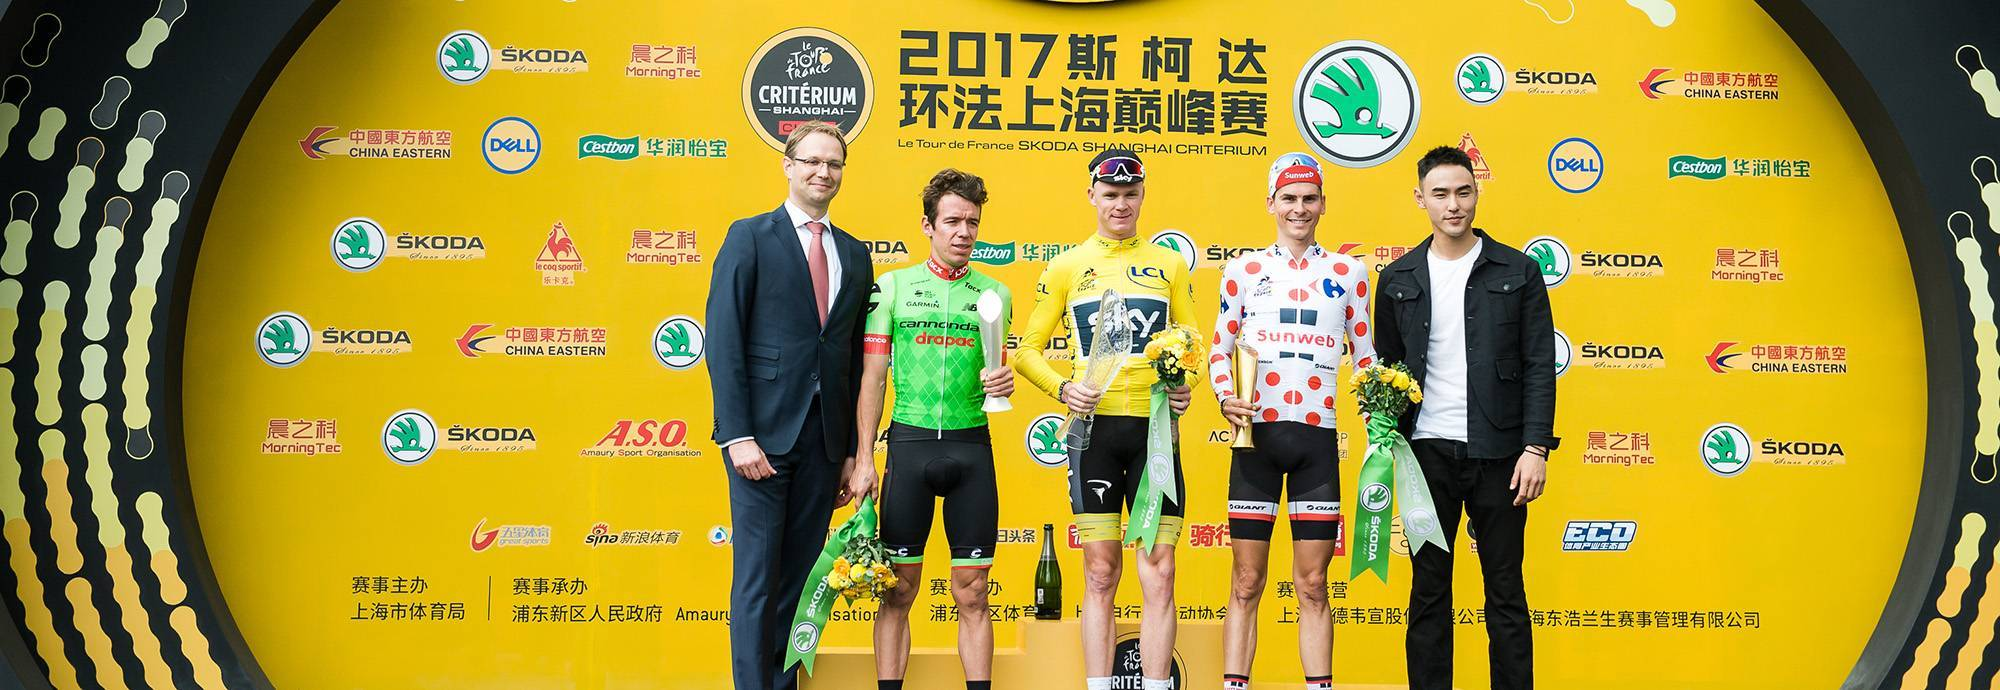 Header: The history of Shanghai Critérium